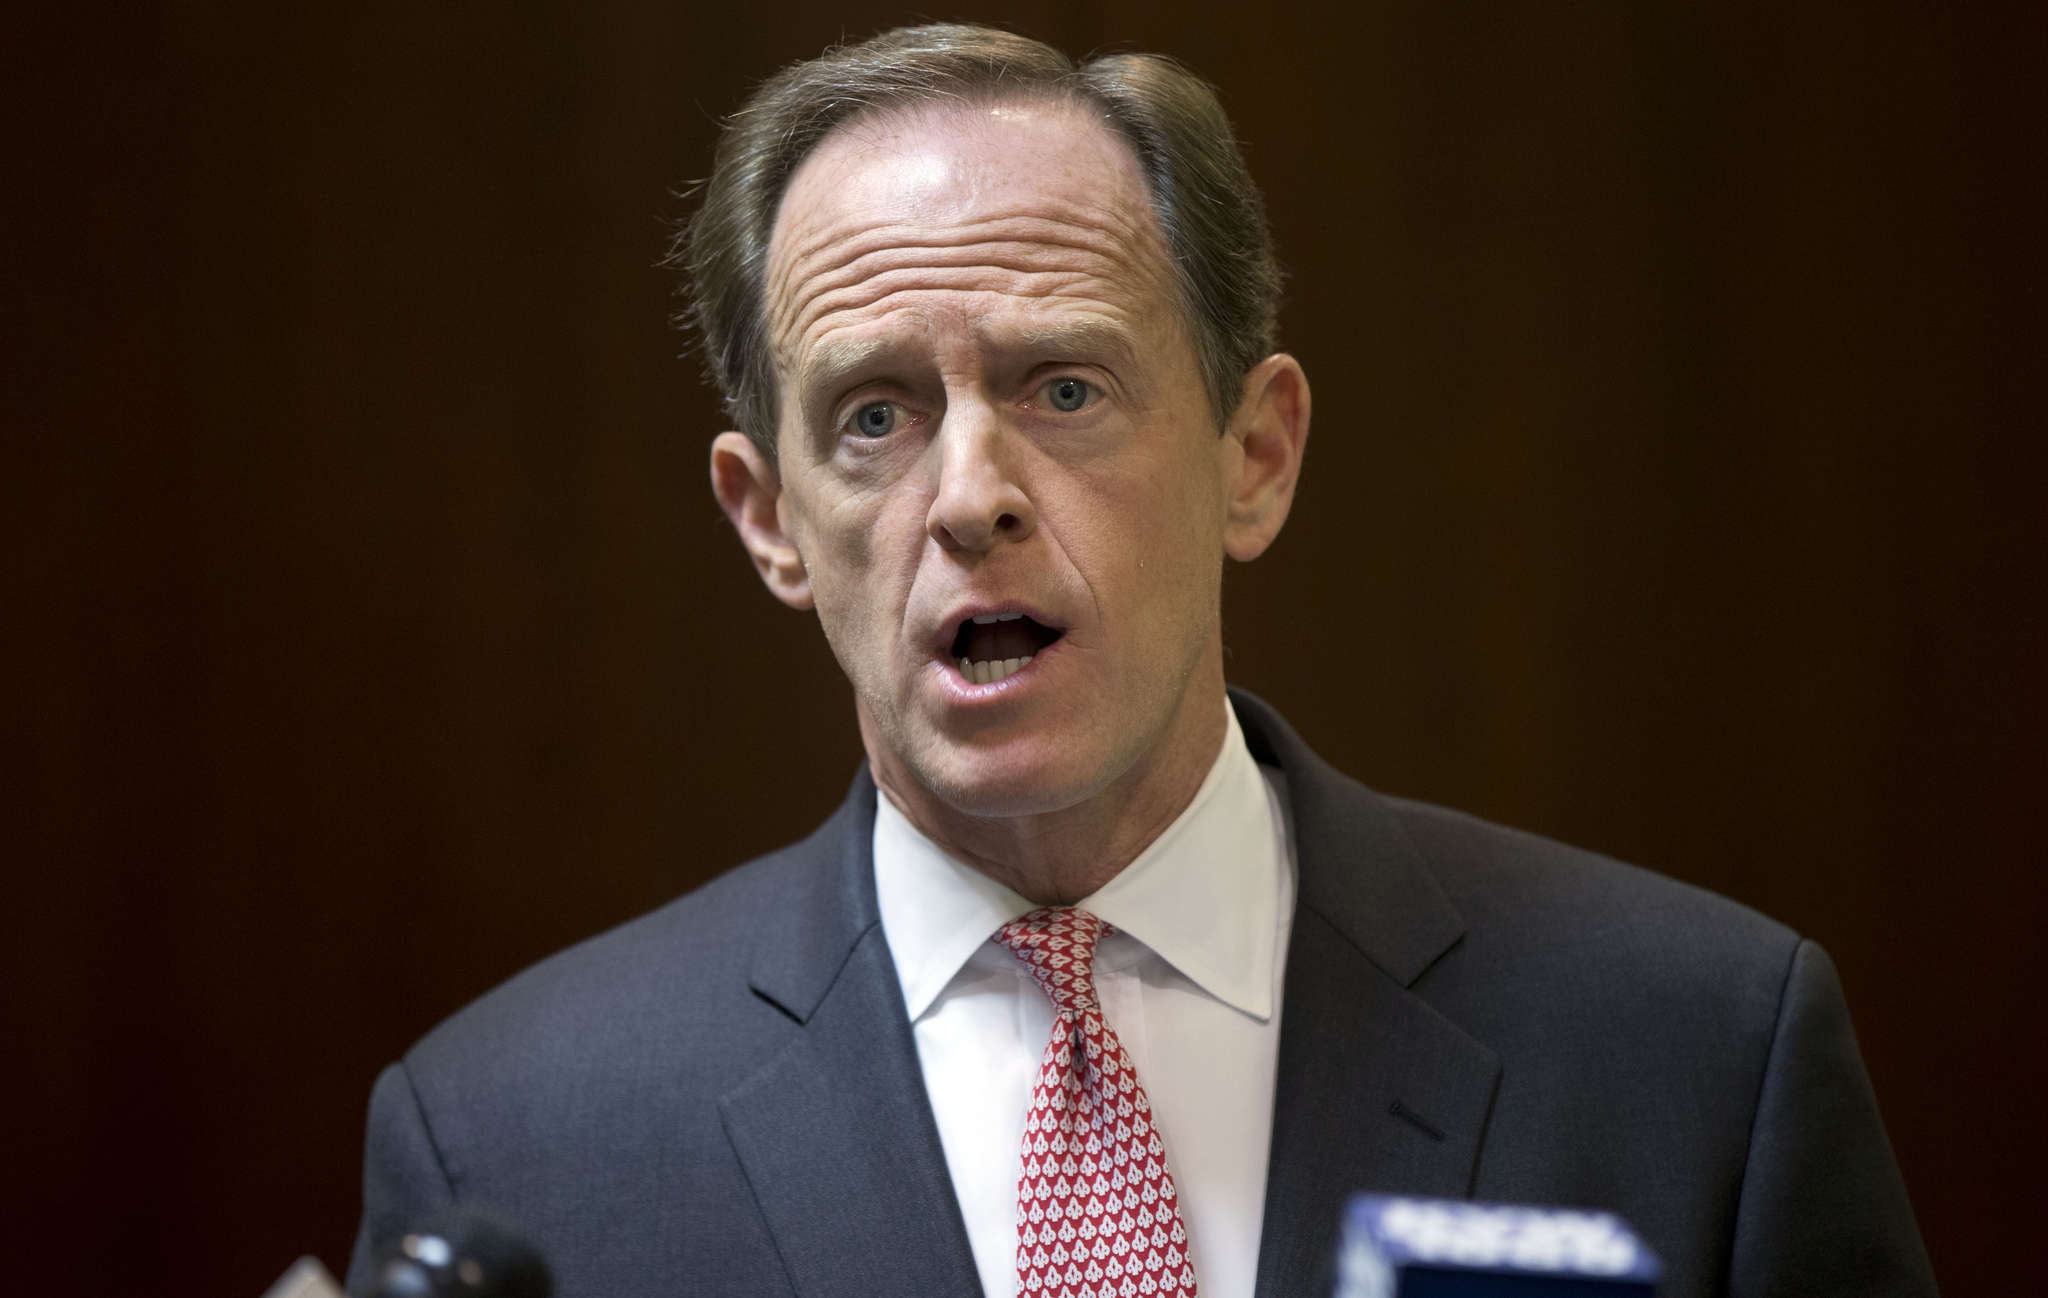 Sen. Pat Toomey, facing a reelection bid, seems to be taking a wait-and-see stance on Donald Trump.